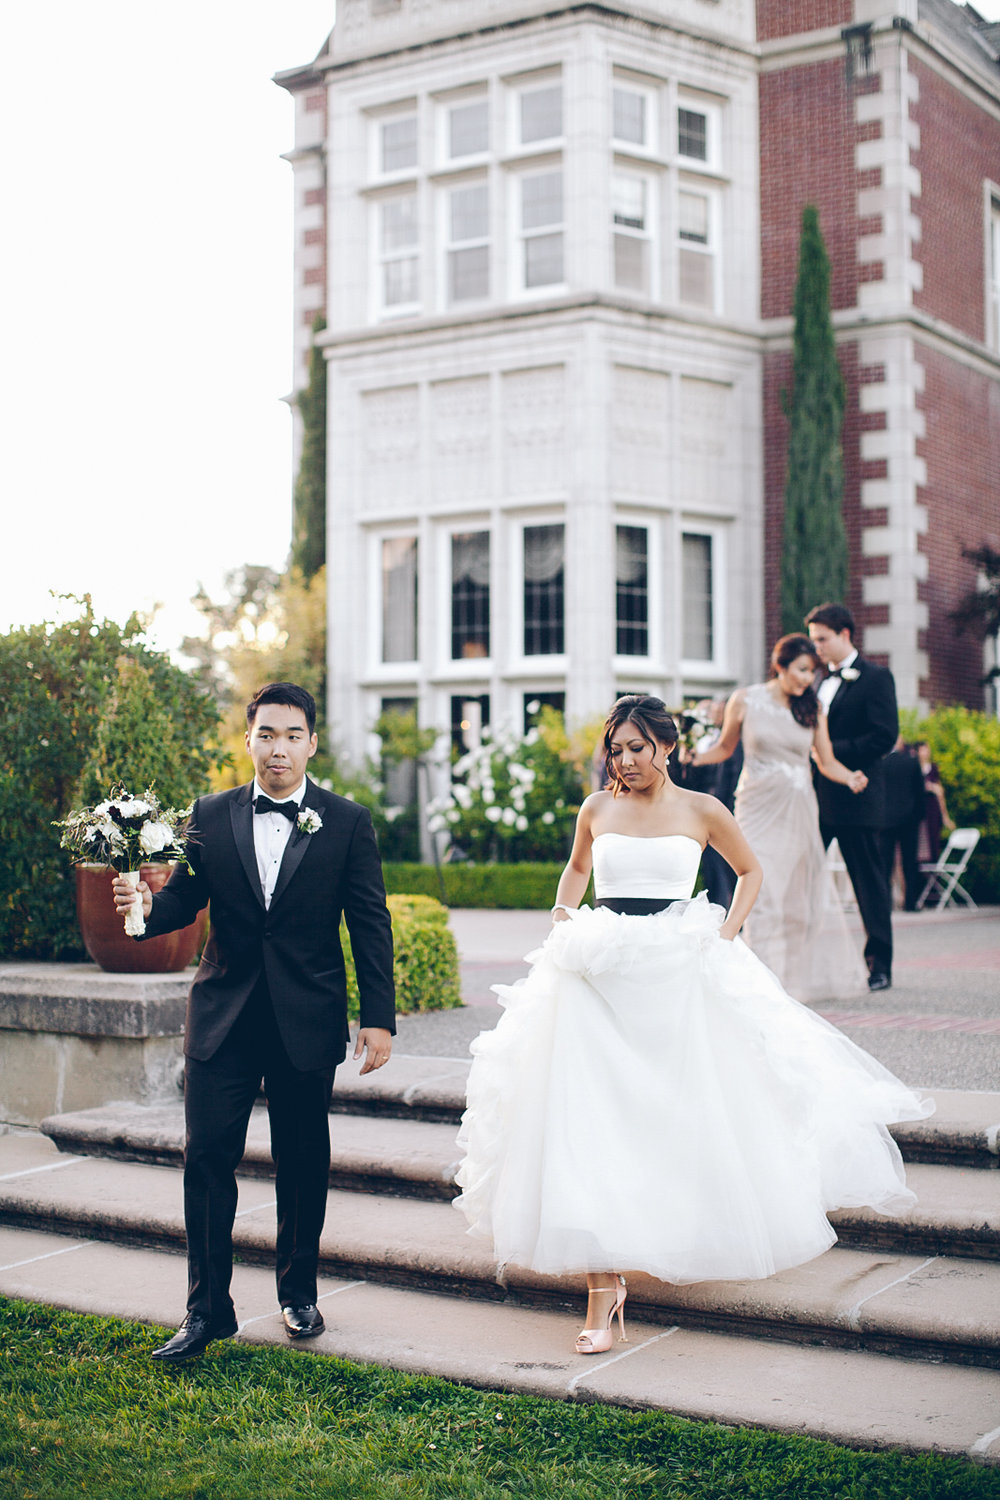 kohl_mansion_wedding_photography_samantha_gene_ebony_siovhan_bokeh_photography_057.jpg